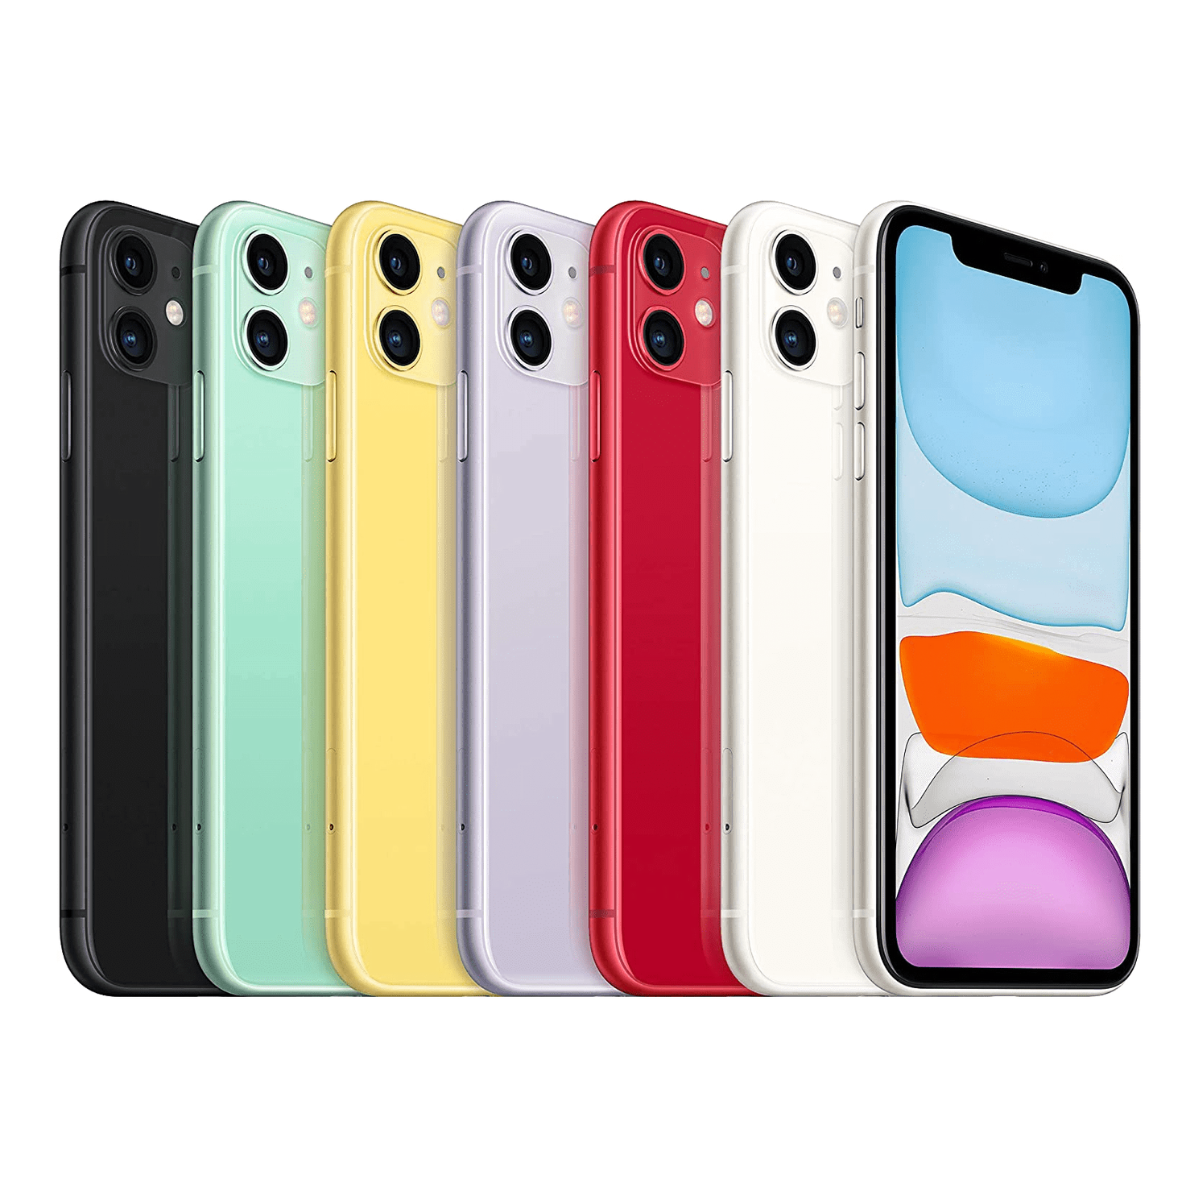 Sim Free iPhone 11 64GB Unlocked Mobile Phone - All Colours